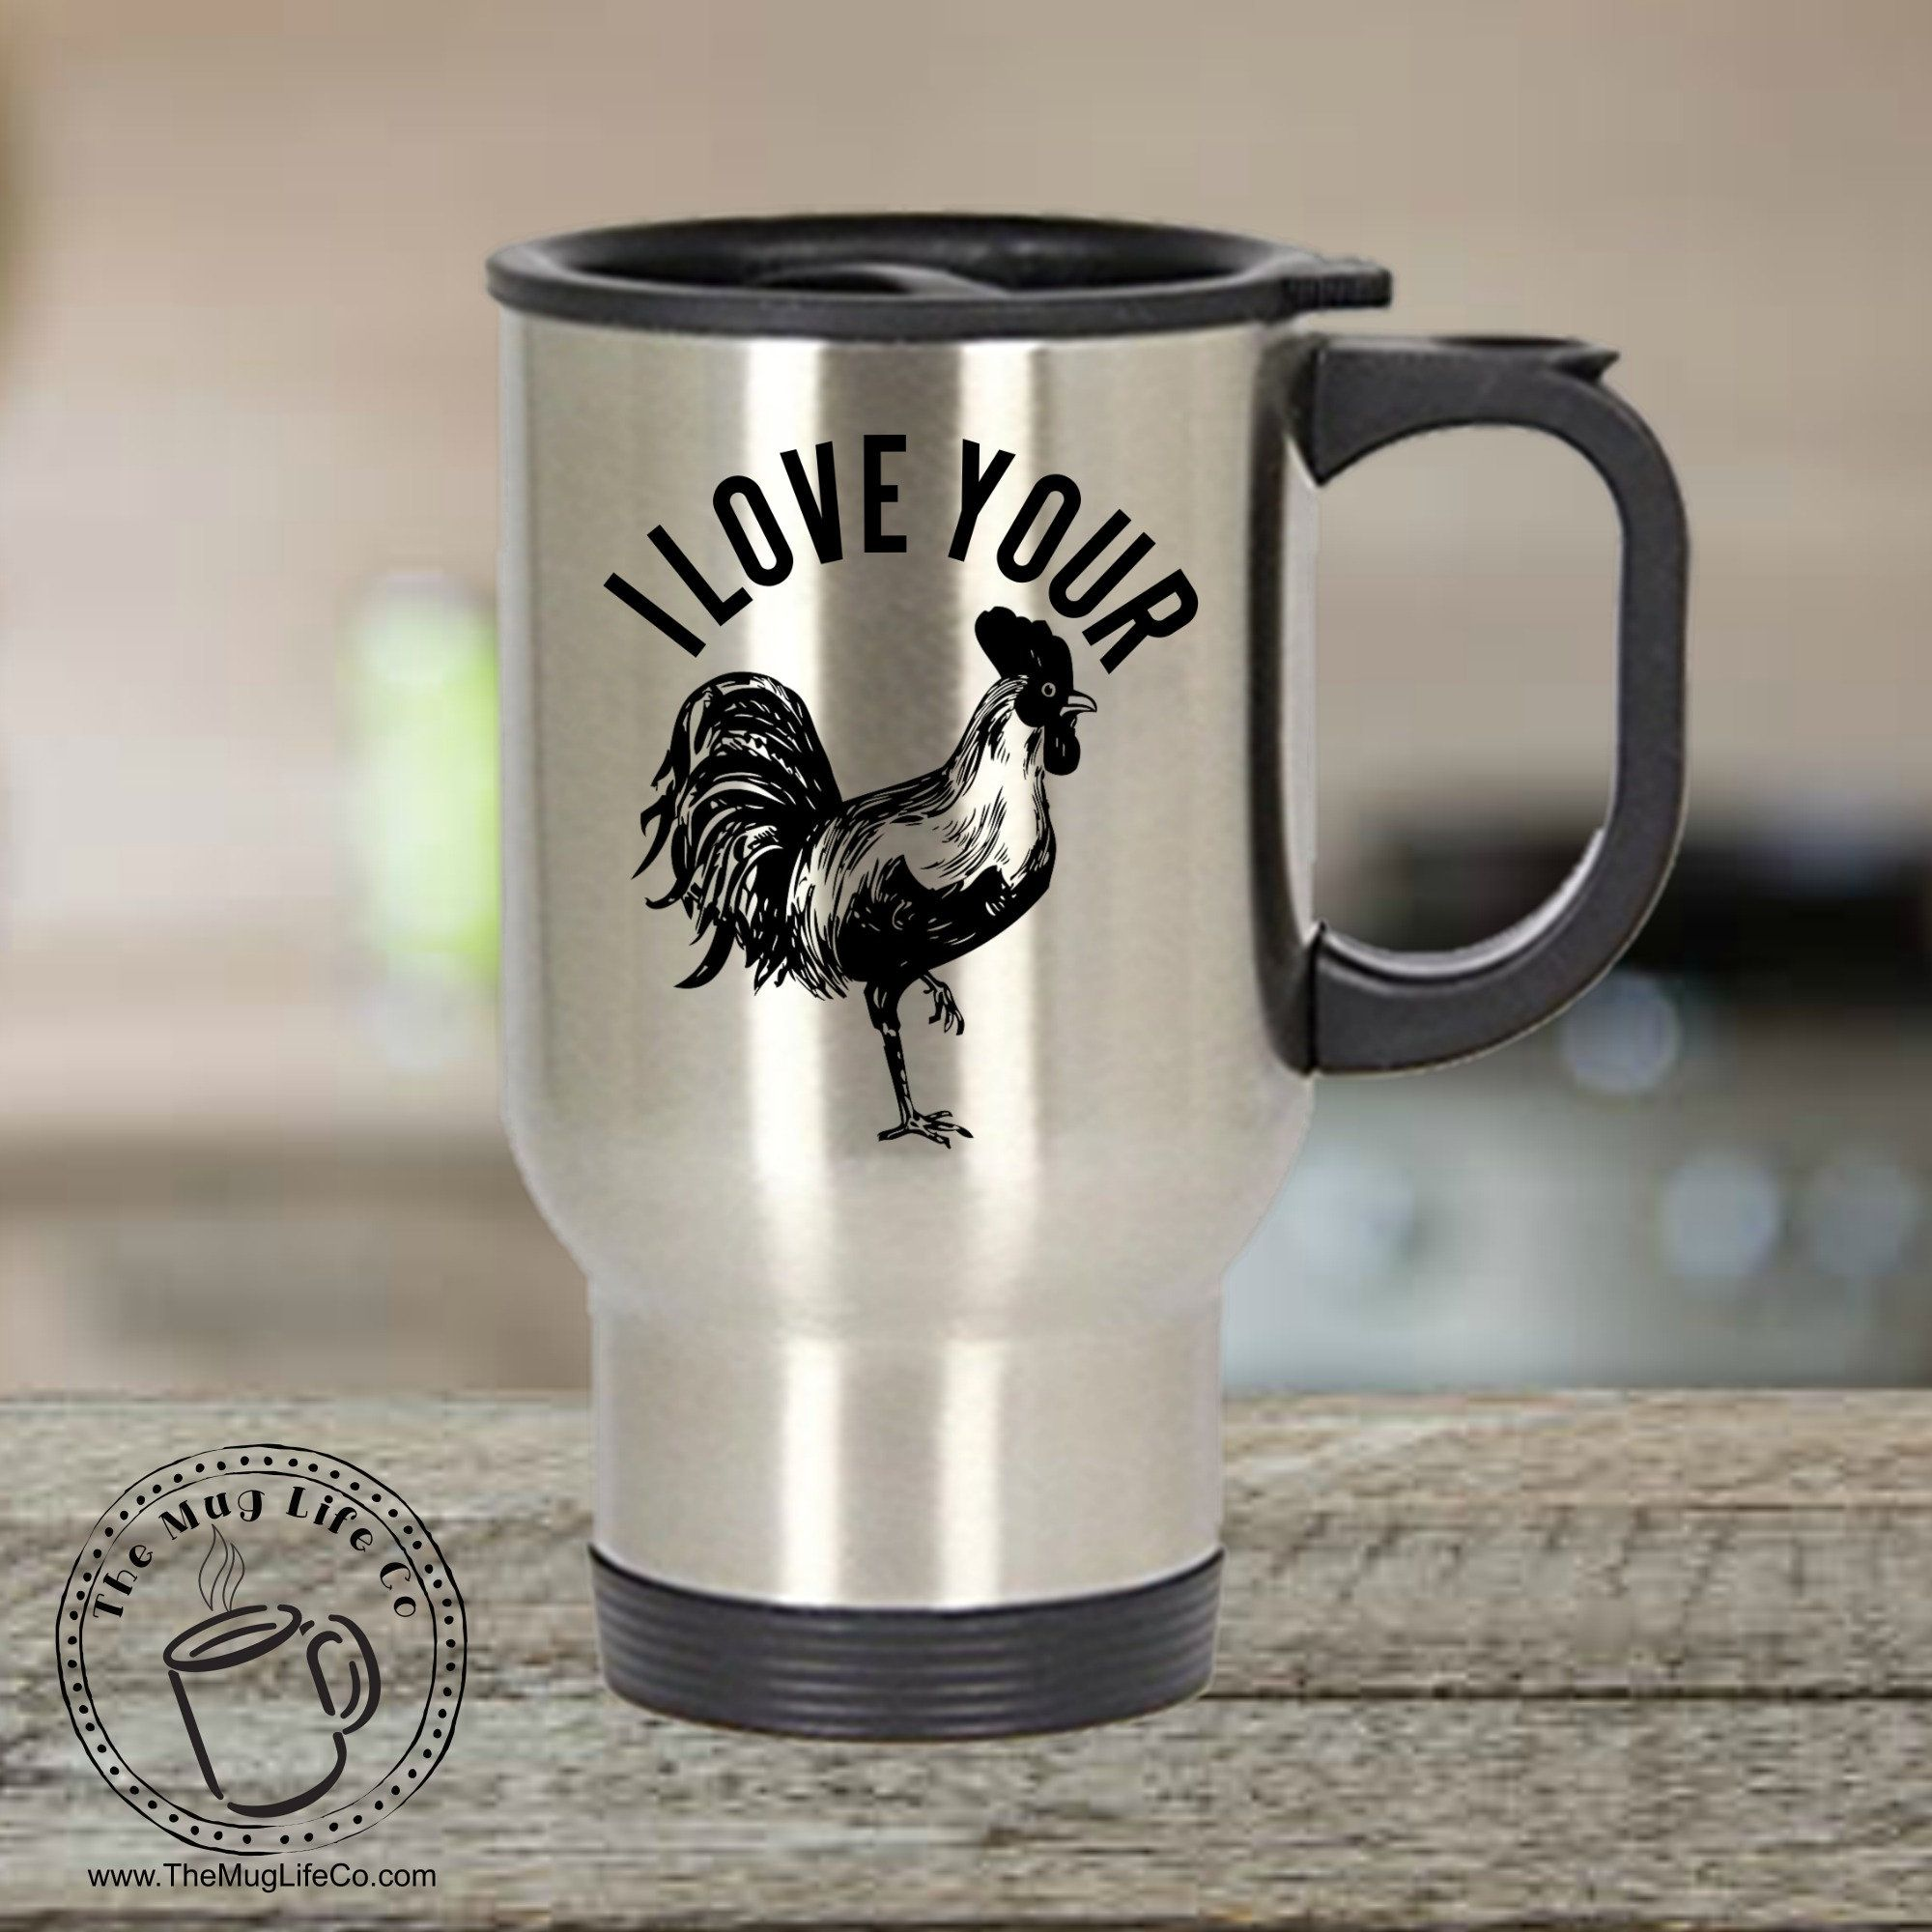 NOW ON TRAVEL MUGS!! Take the love of your woman (or man